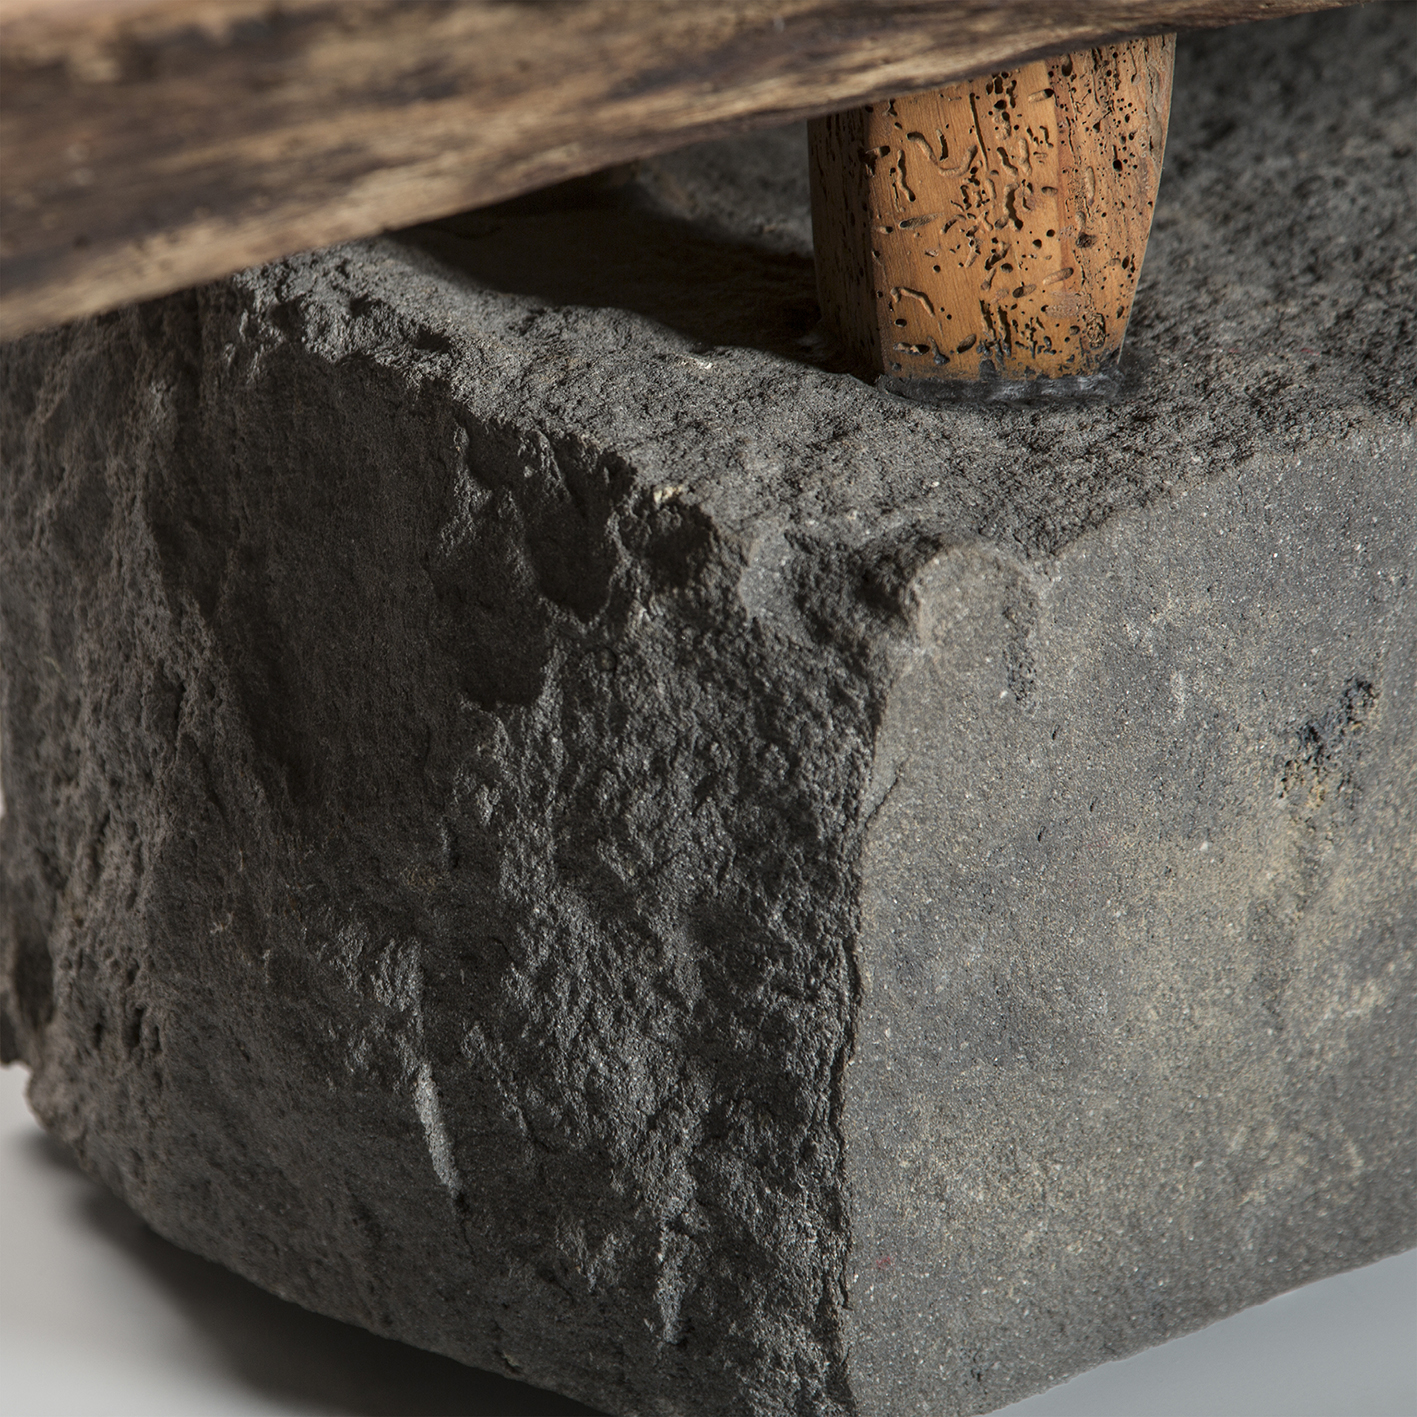 web2-bench-salvaged-mexican-alder-wood-basalt-recinto-with-feet-shi-ho-julio-martinez-marion-friedmann-gallery-25.jpg